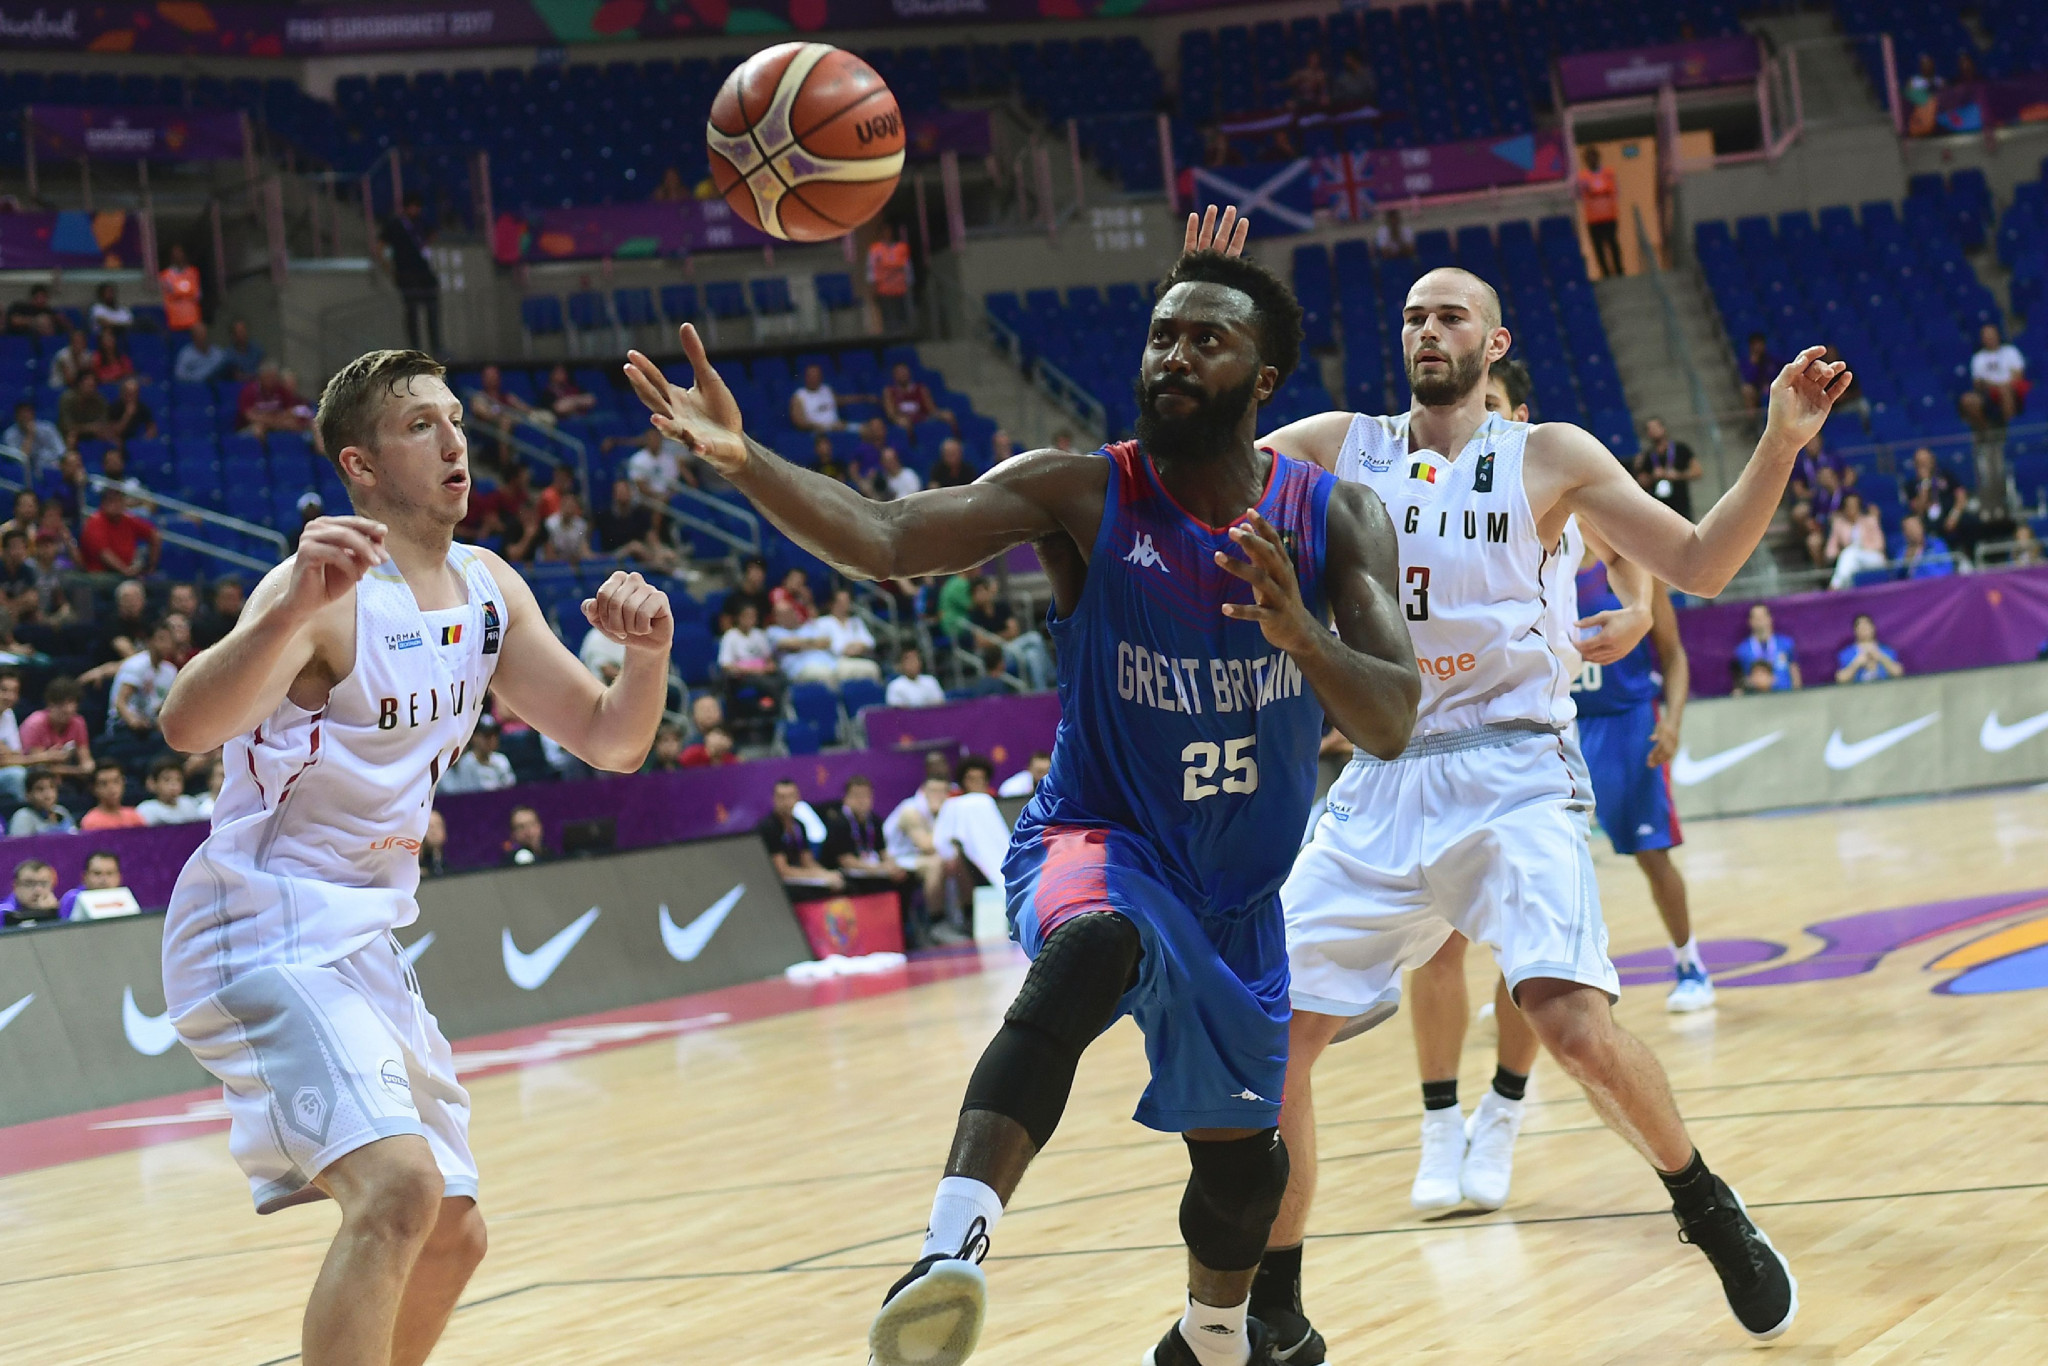 Great Britain's basketball team are under threat due to the funding problems ©Getty Images